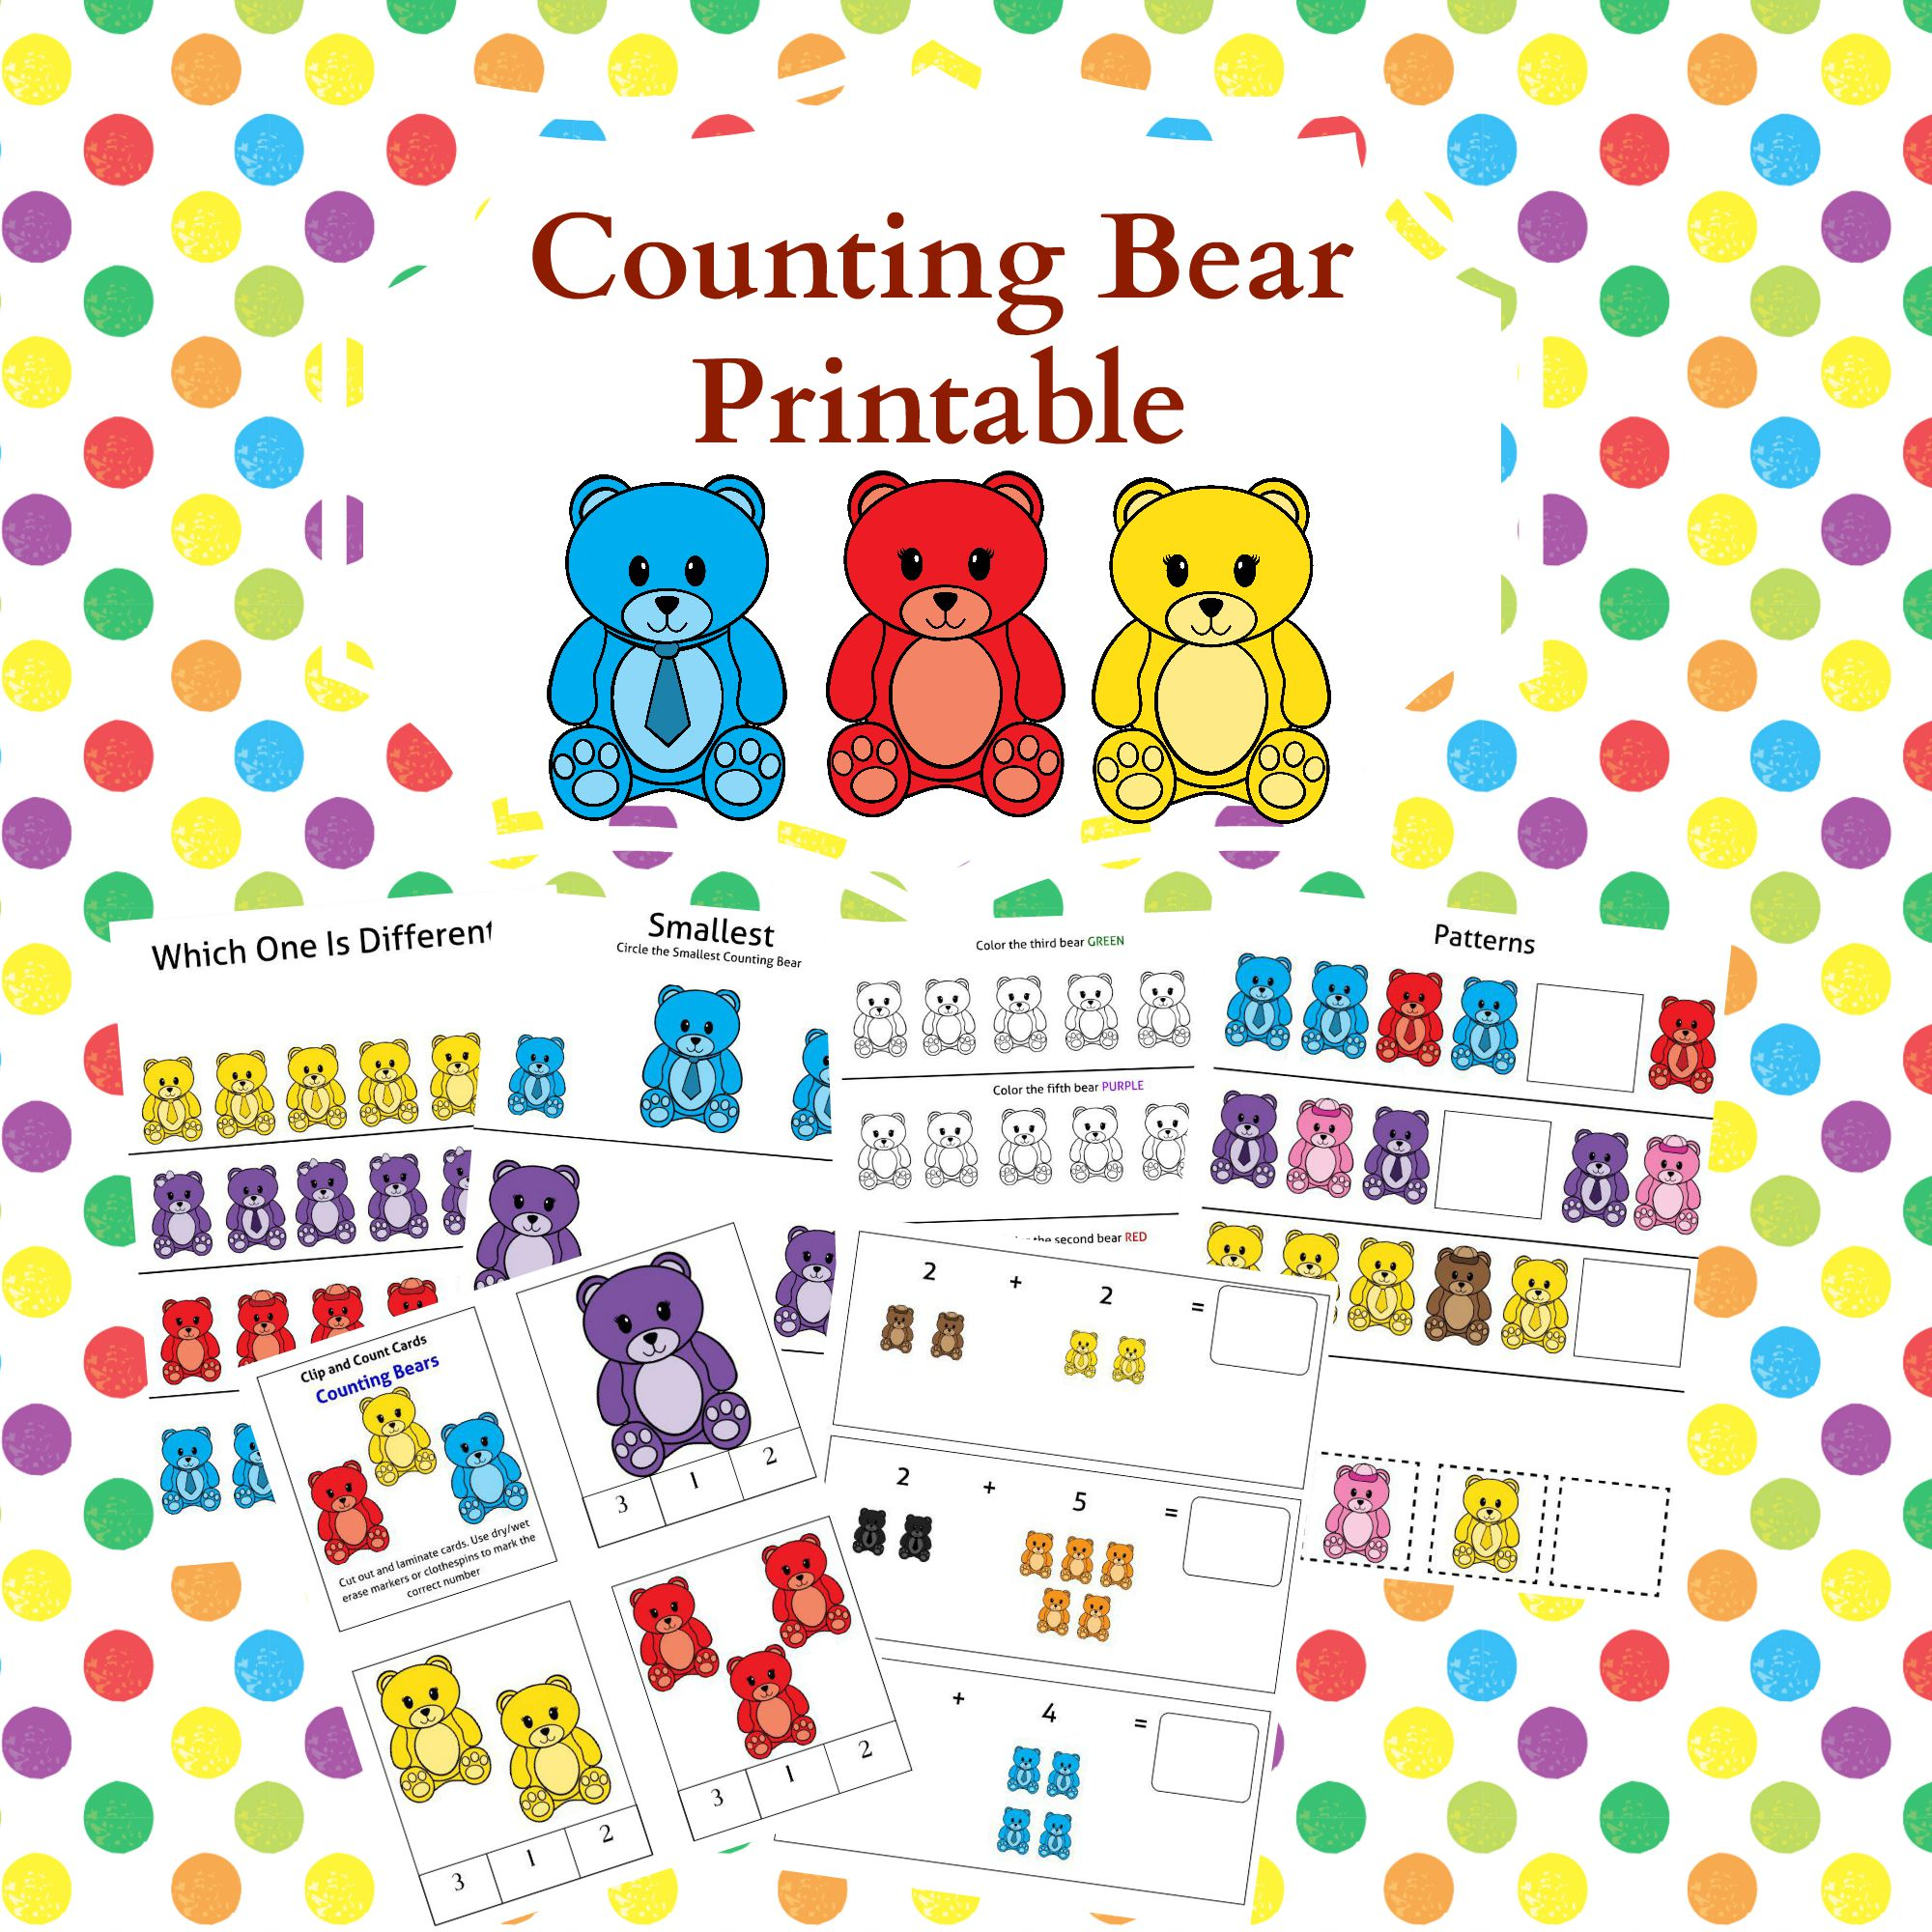 Counting Bears Printable